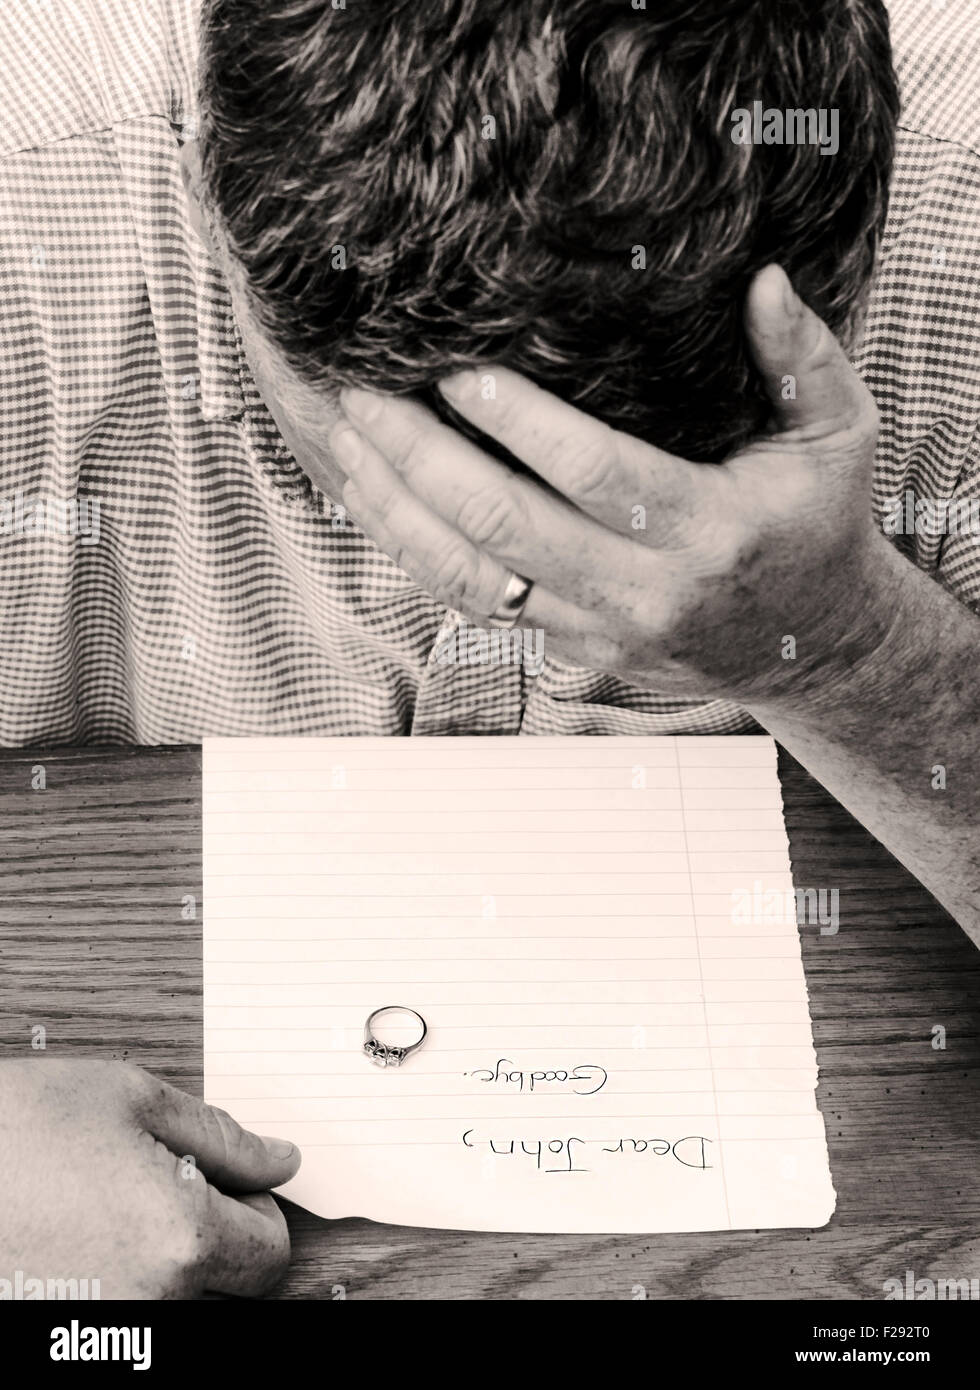 Man reads goodbye note from marriage partner - Stock Image